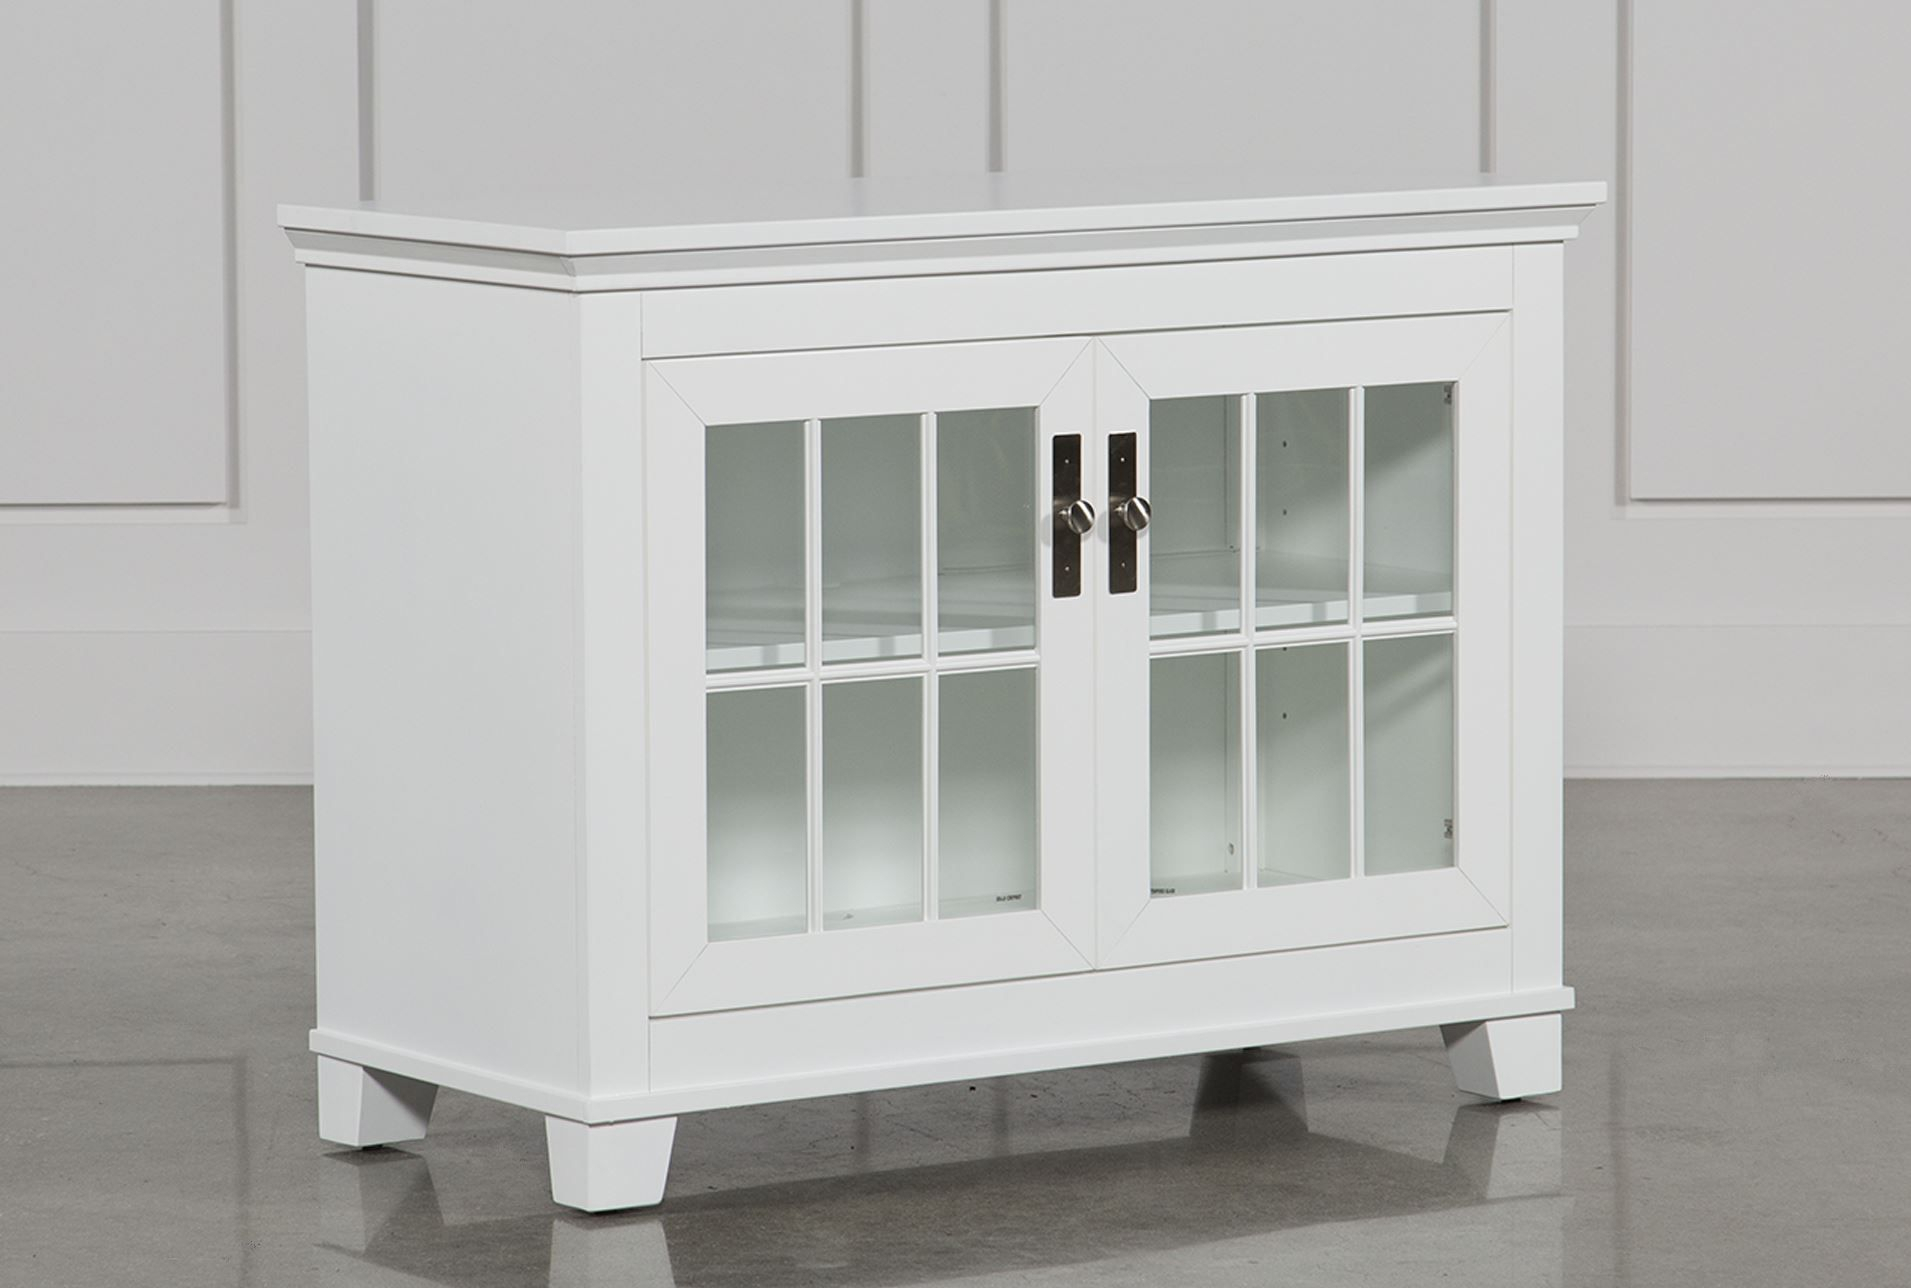 295 Living Hamden White 43 Inch Tv Console | Playroom | Pinterest With Sinclair White 54 Inch Tv Stands (Photo 8 of 30)